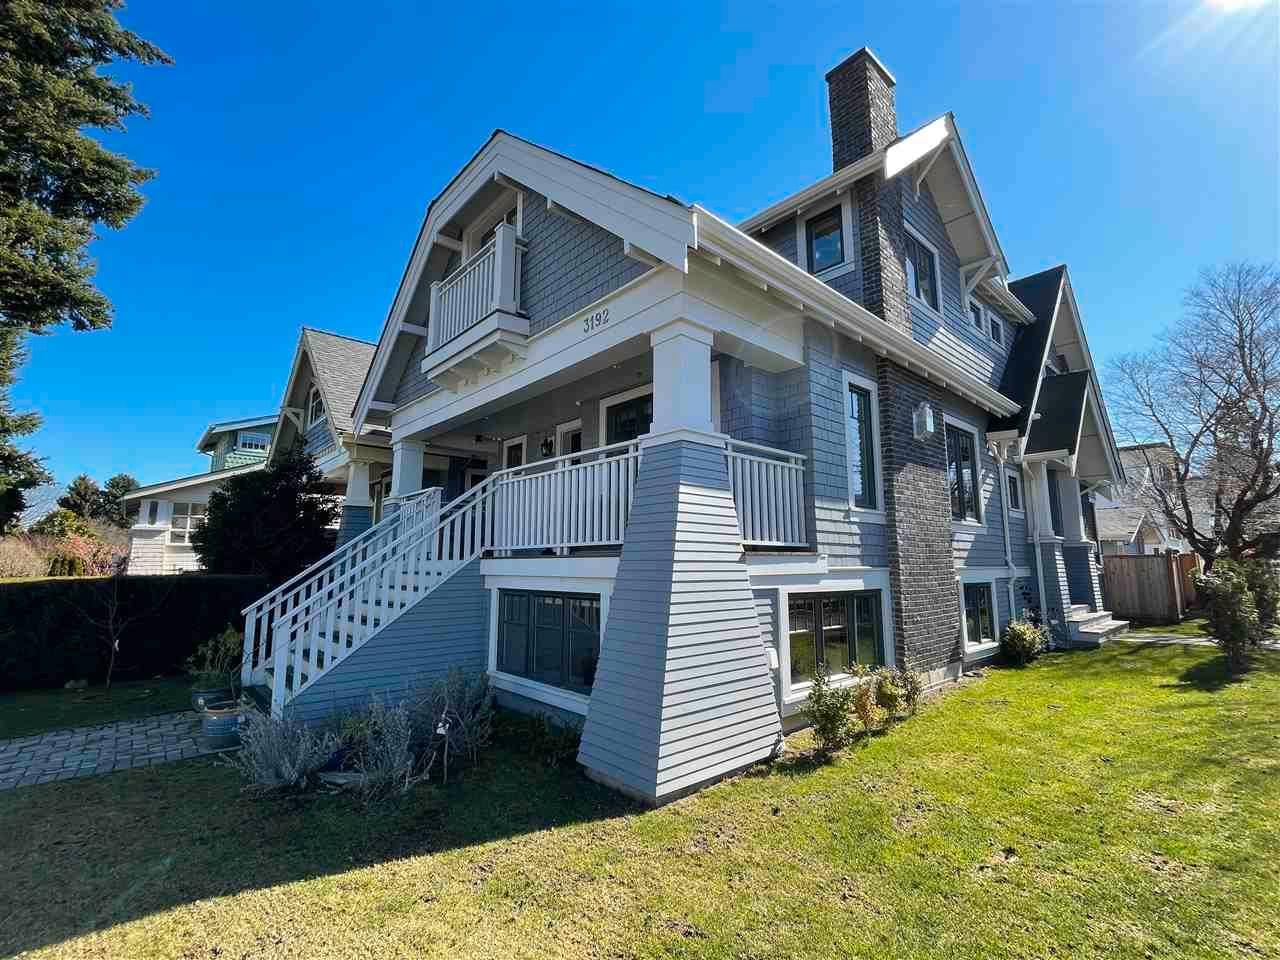 Main Photo: 3192 W 3RD Avenue in Vancouver: Kitsilano 1/2 Duplex for sale (Vancouver West)  : MLS®# R2551826